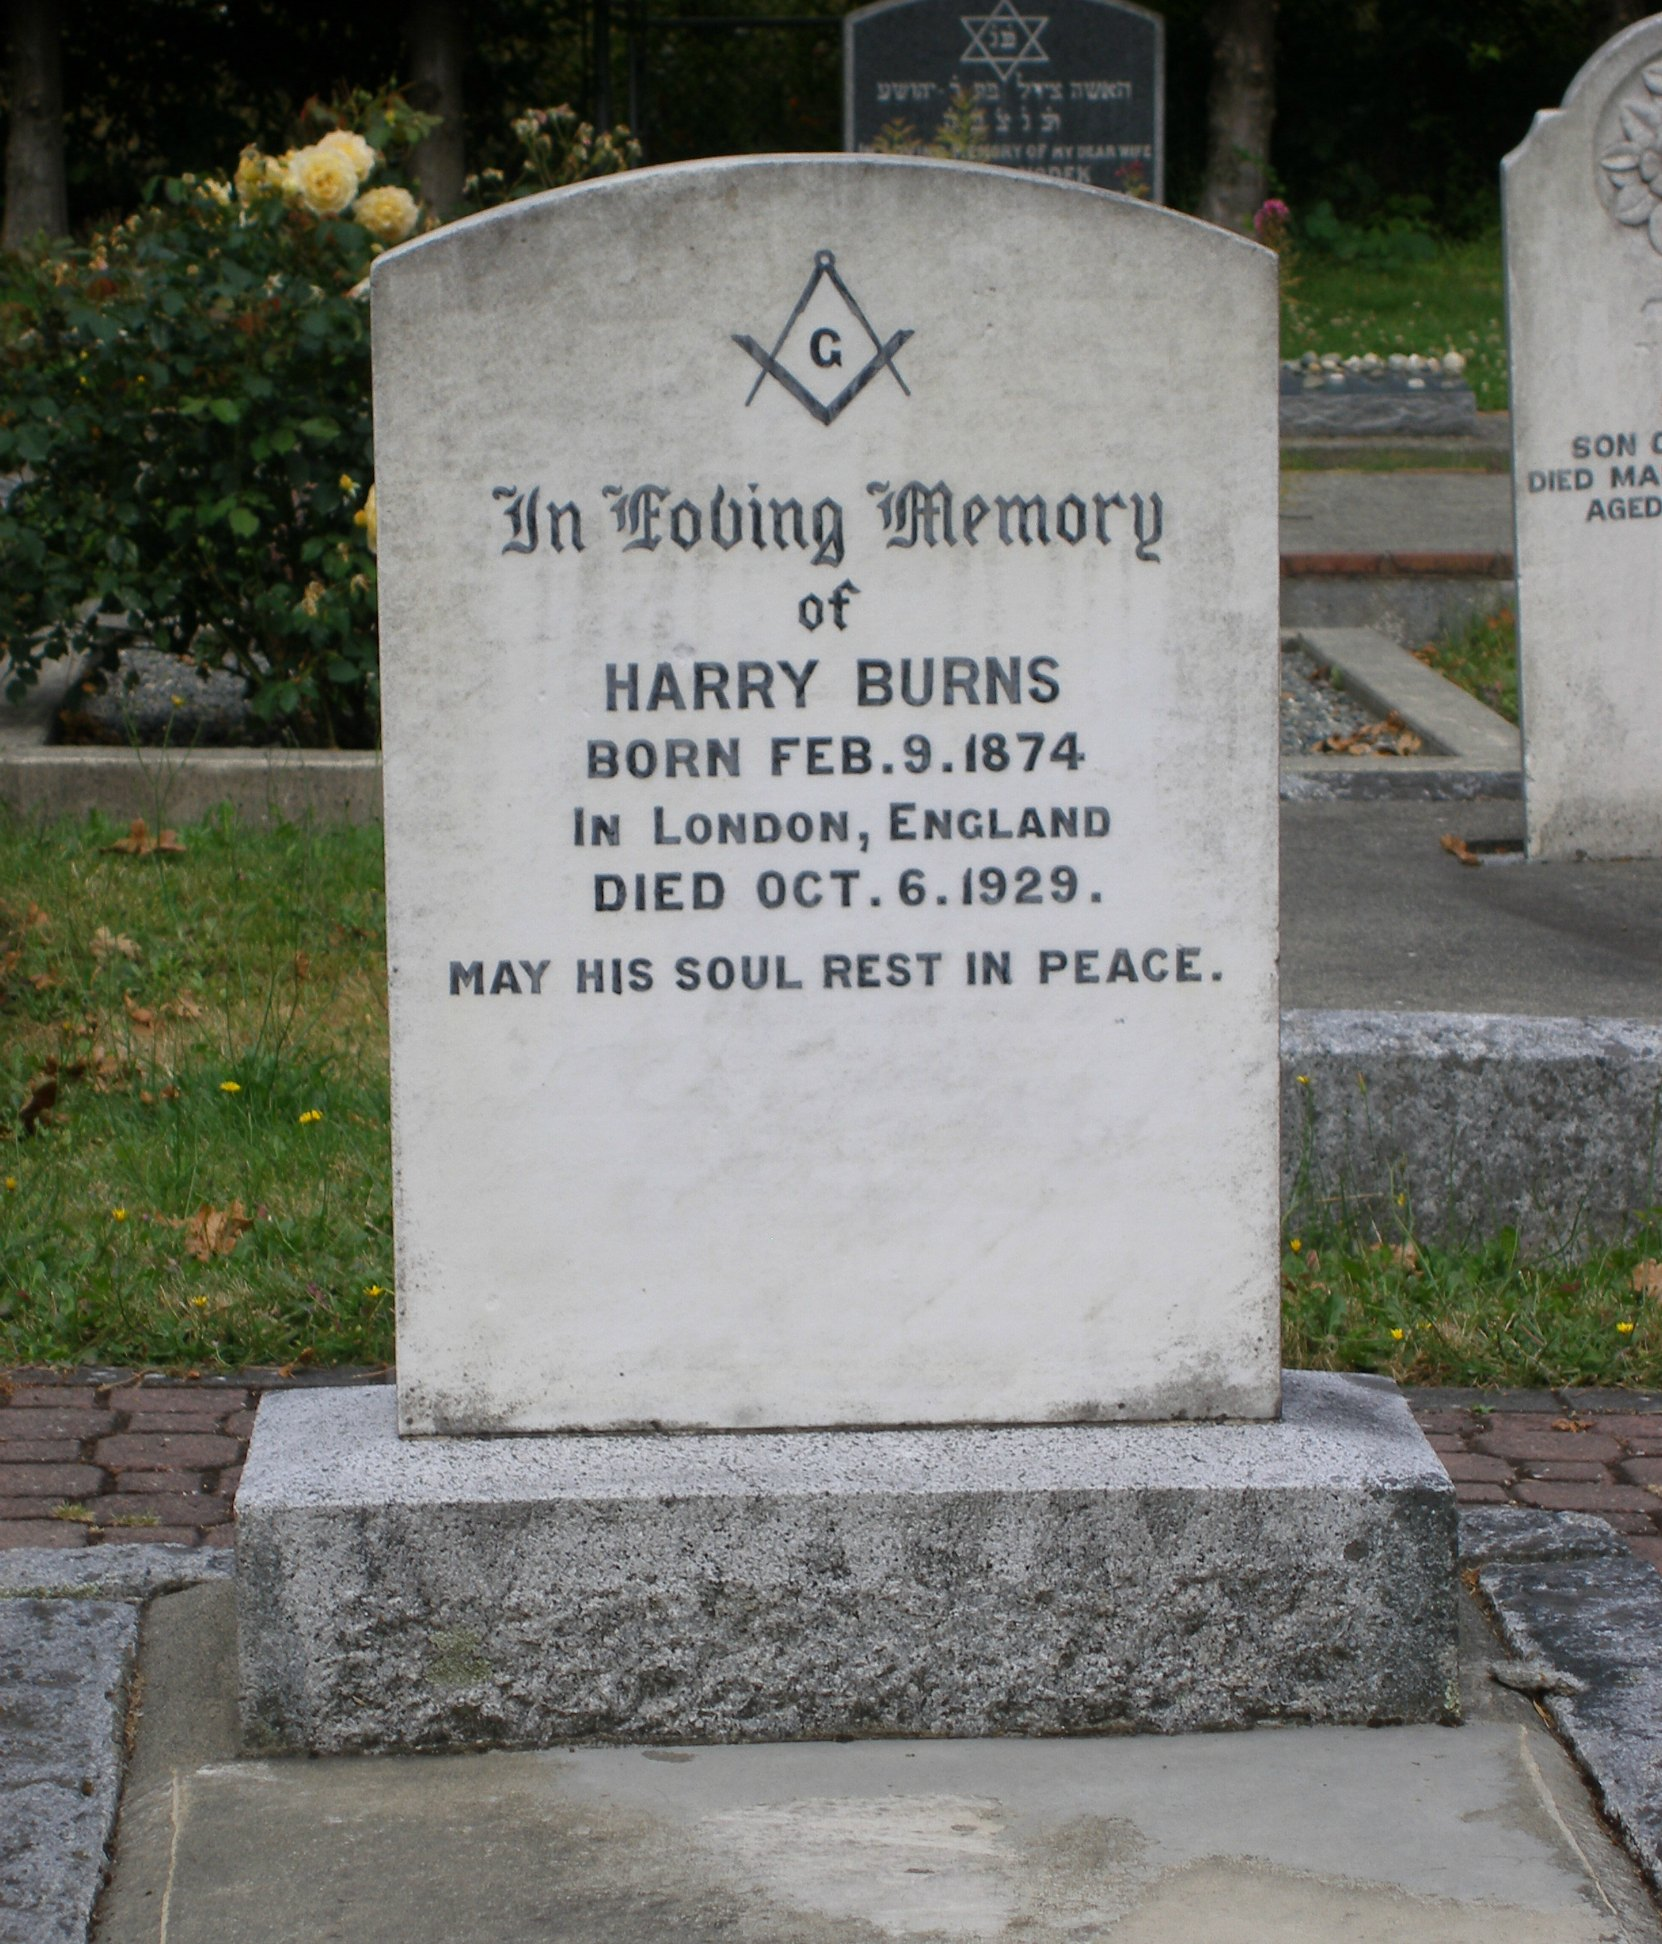 Harry Burns grave inscription, Victoria Jewish cemetery, Victoria, B.C.